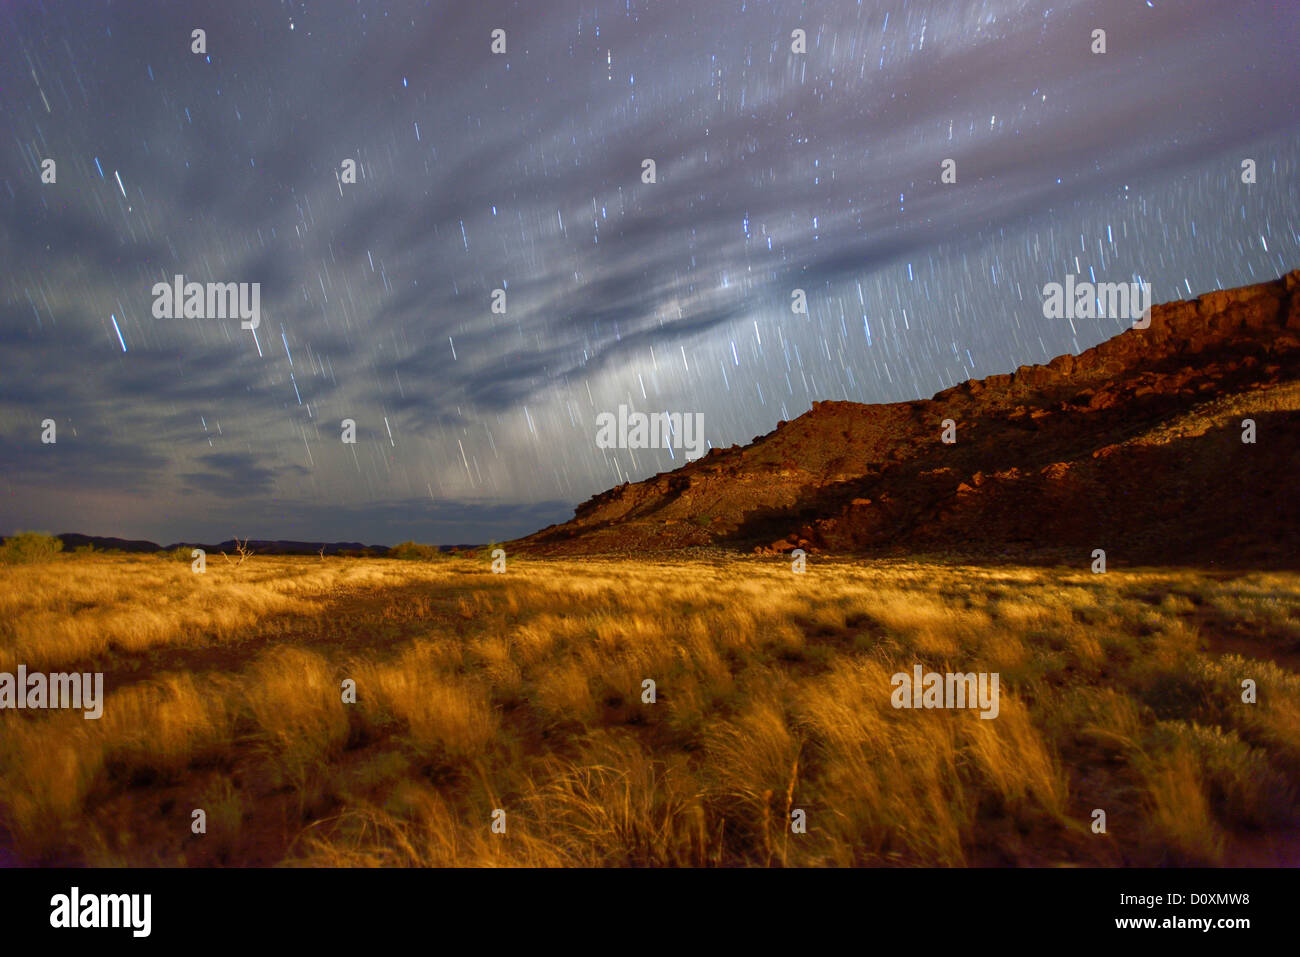 Africa, Namibia, Damaraland, grassland, night, star trails, sky, stars, starlit, spangled sky, - Stock Image